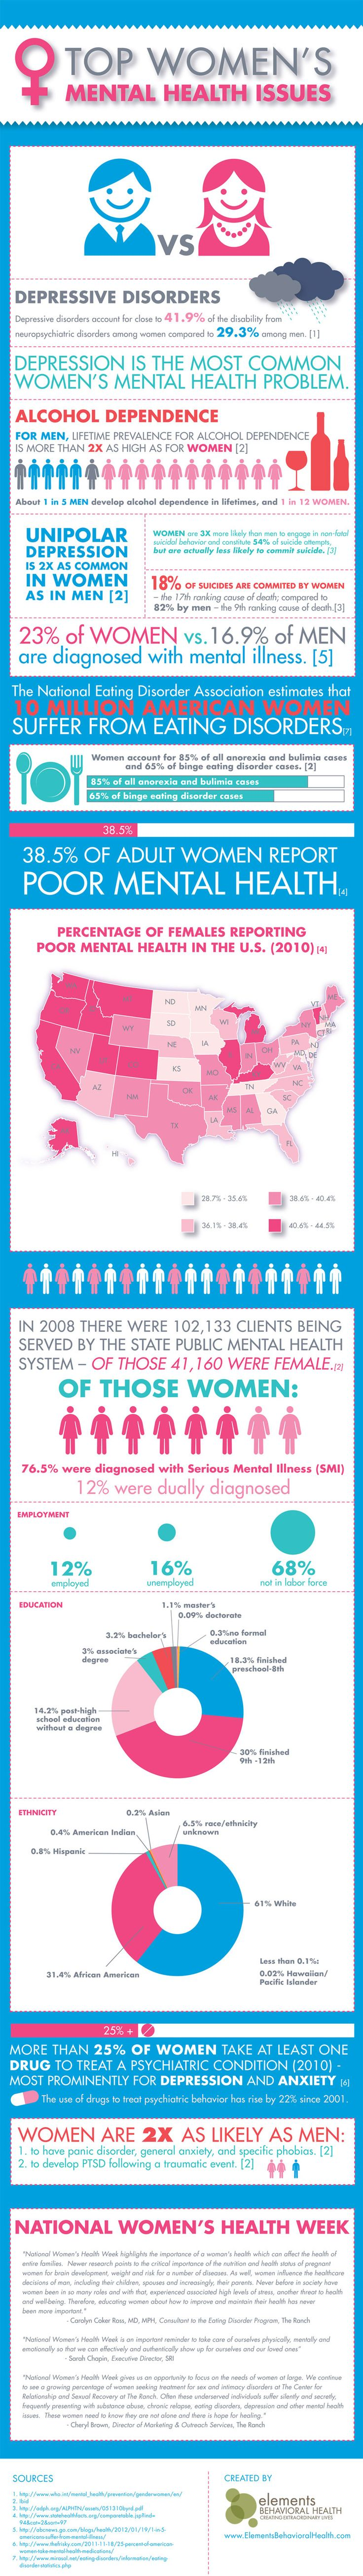 Top Women's #MentalHealth Issues #Infographic theirrationalmind.com